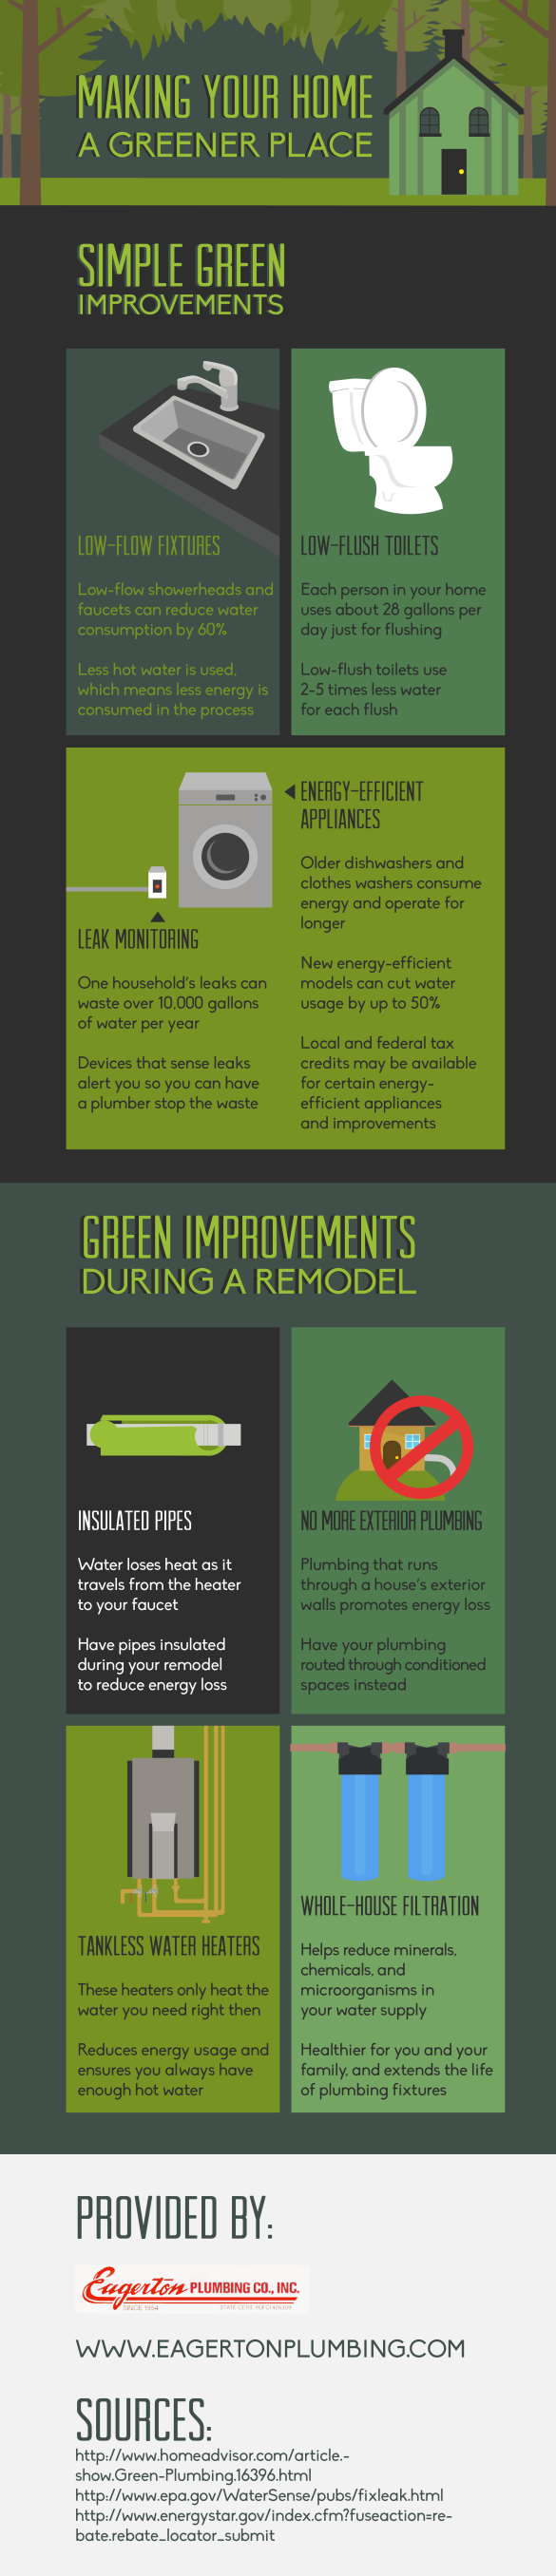 Making your Home a Greener Place